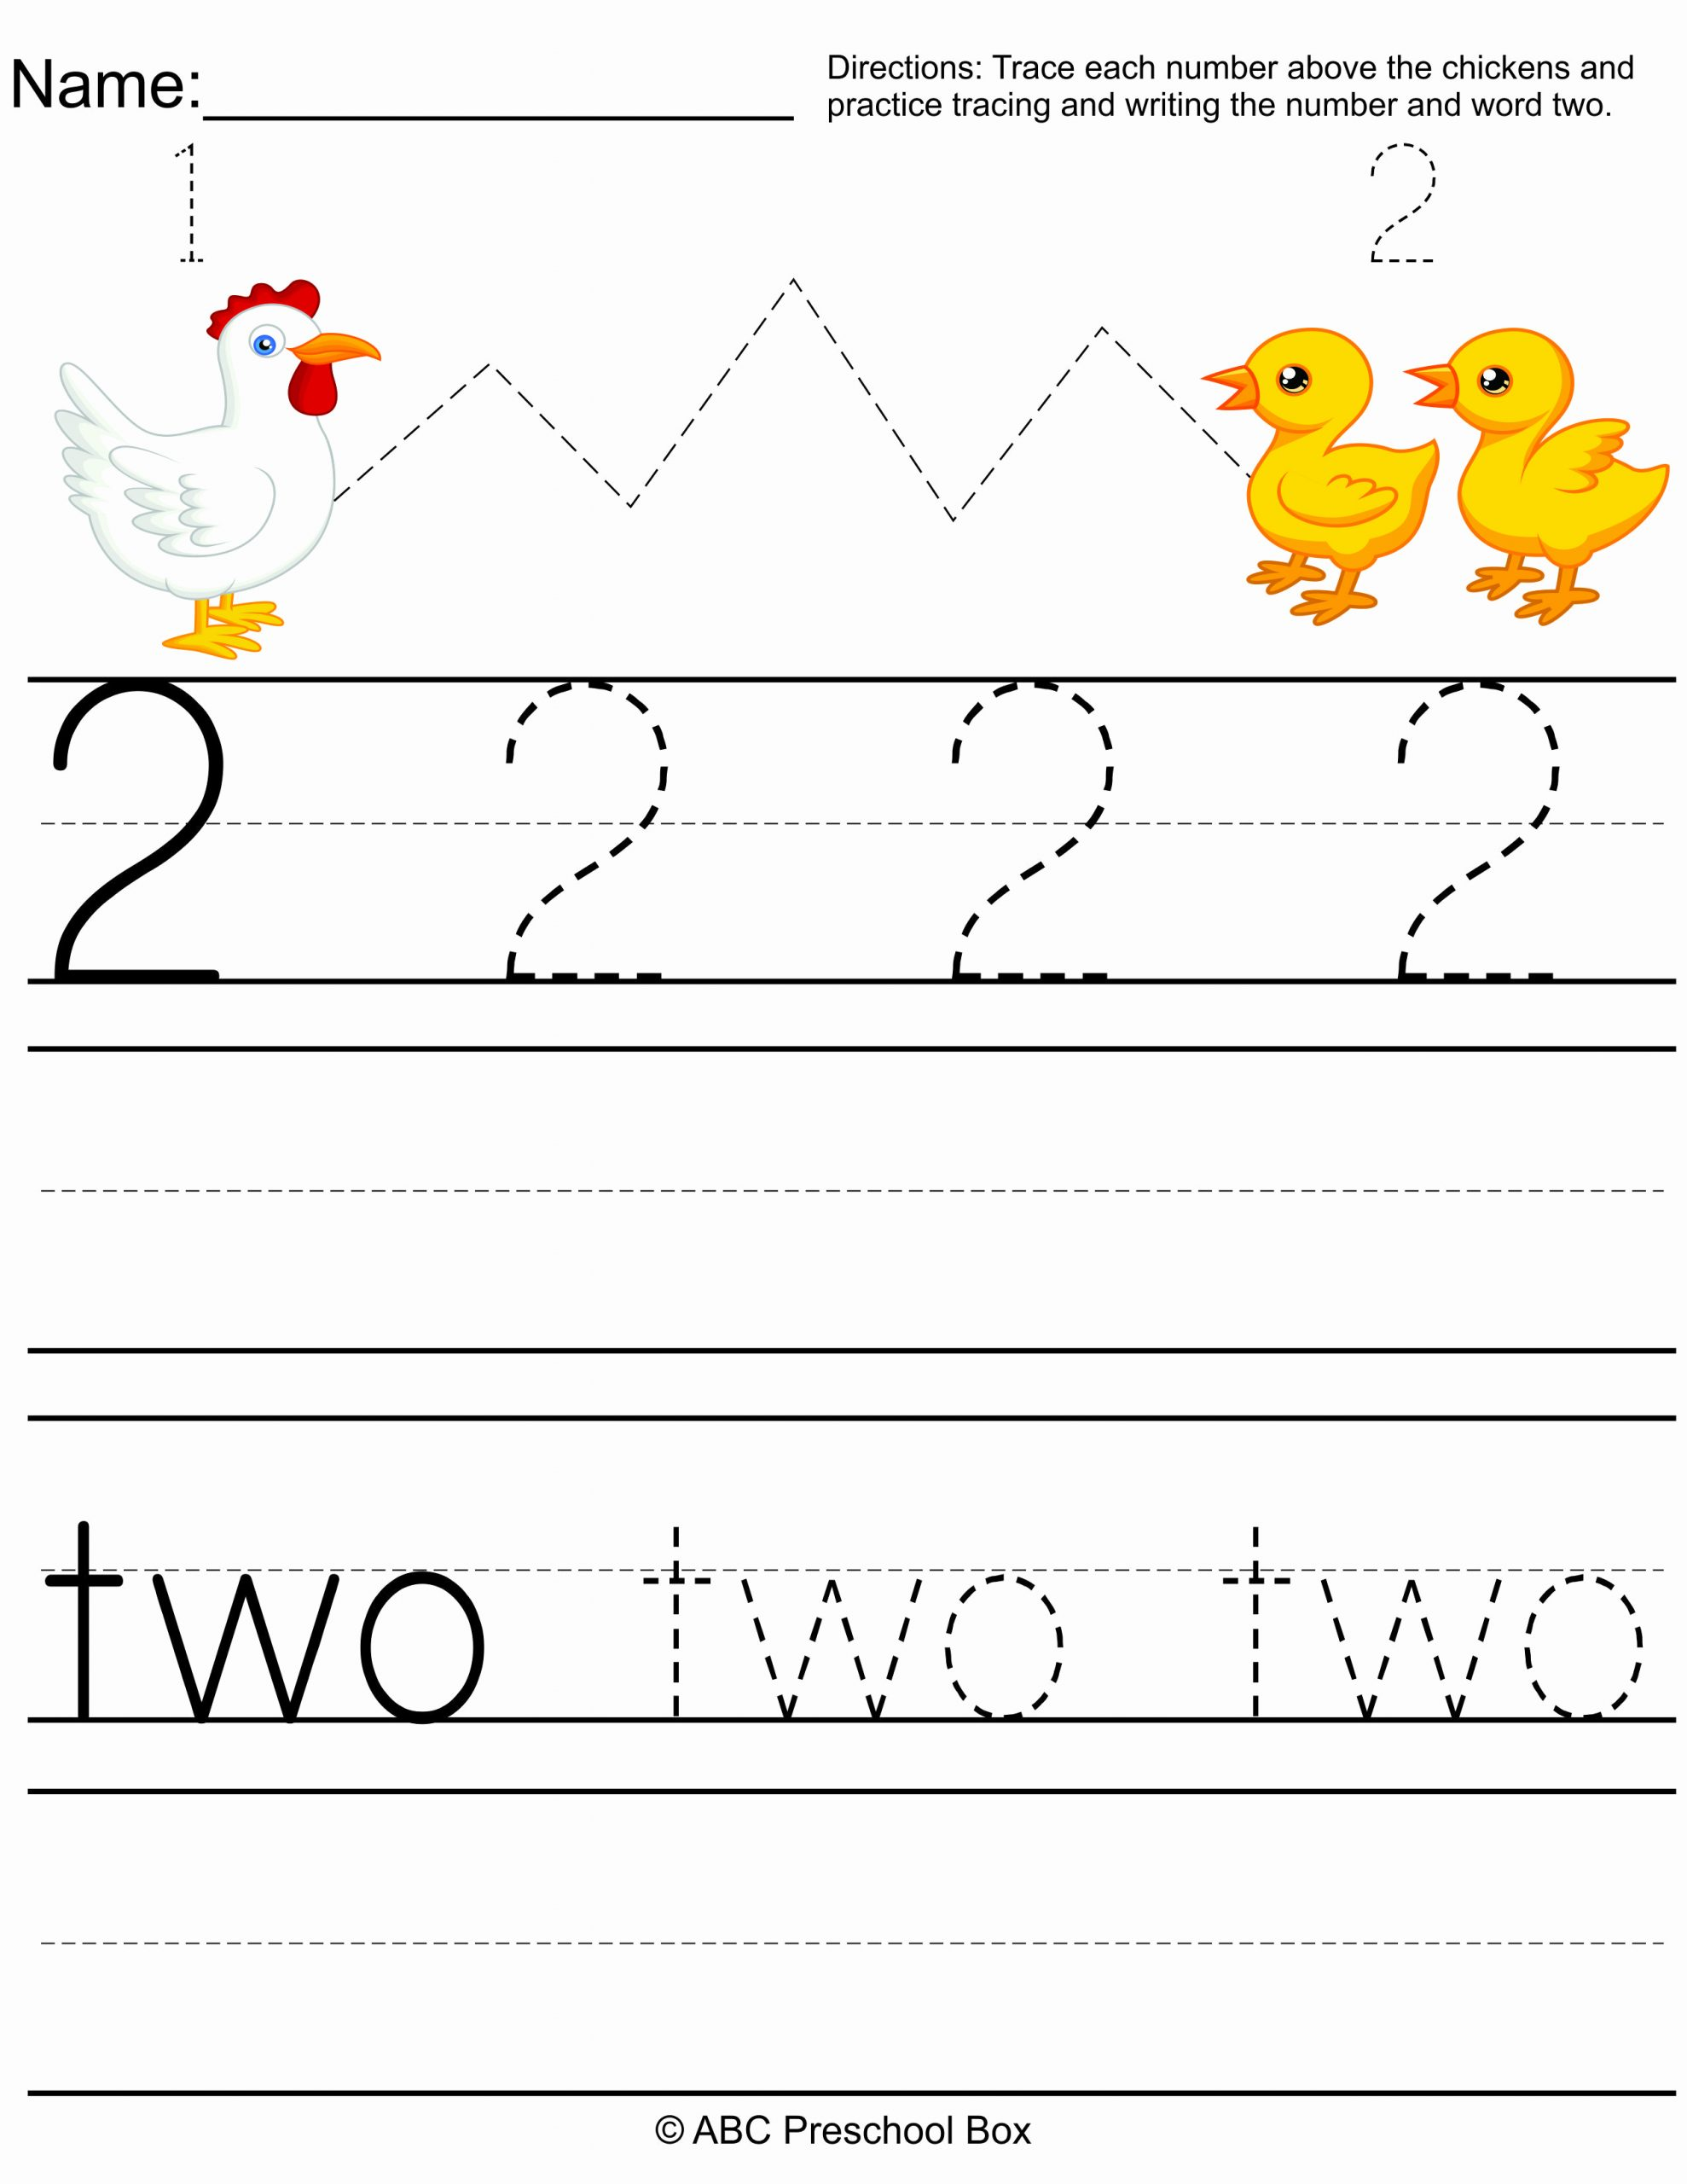 Number 2 Worksheets for Preschool Inspirational Number 2 Preschool Worksheet From Abcpreschoolbox